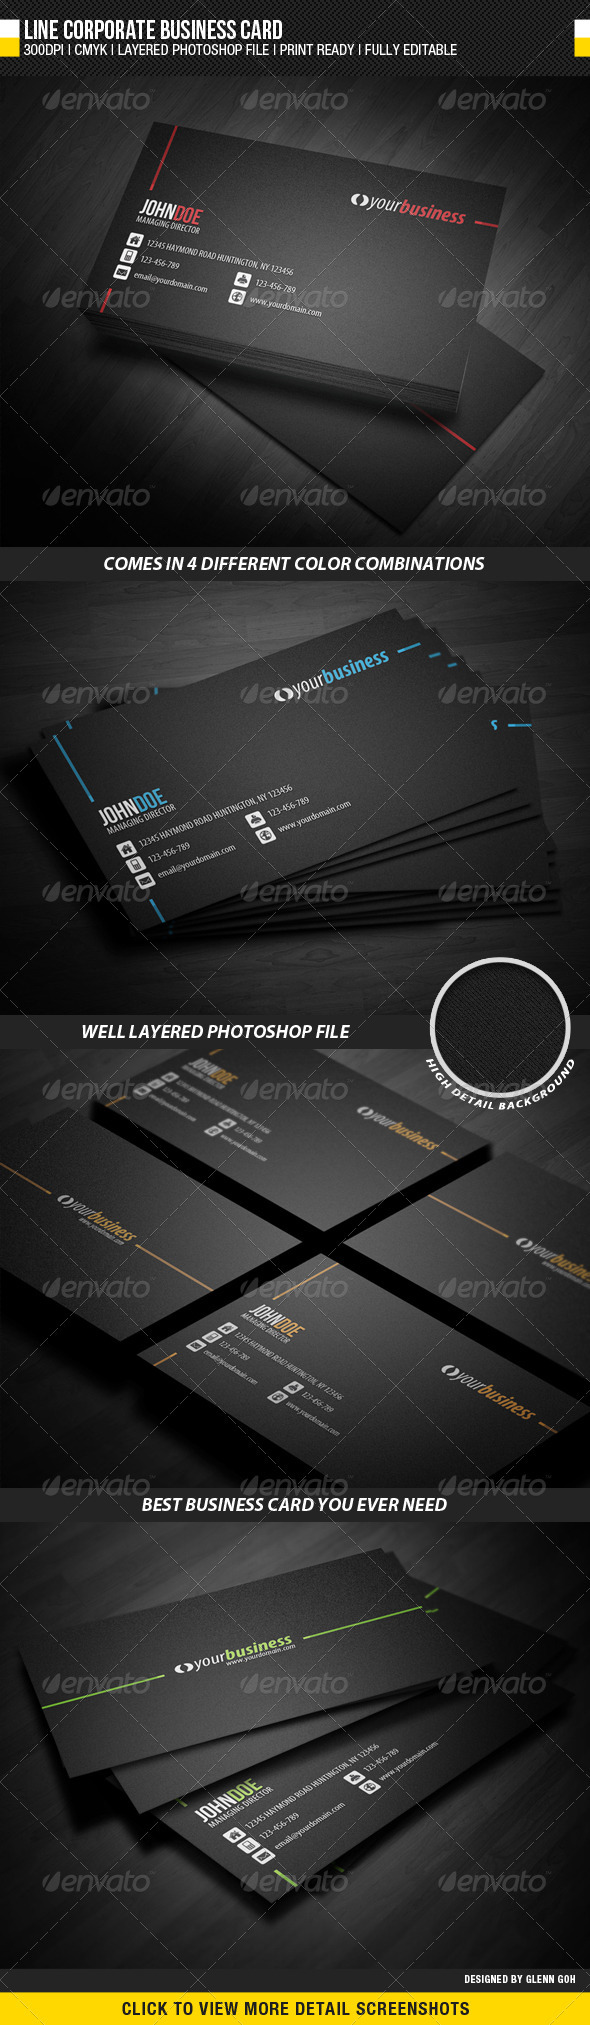 GraphicRiver Line Corporate Business Card 2240236